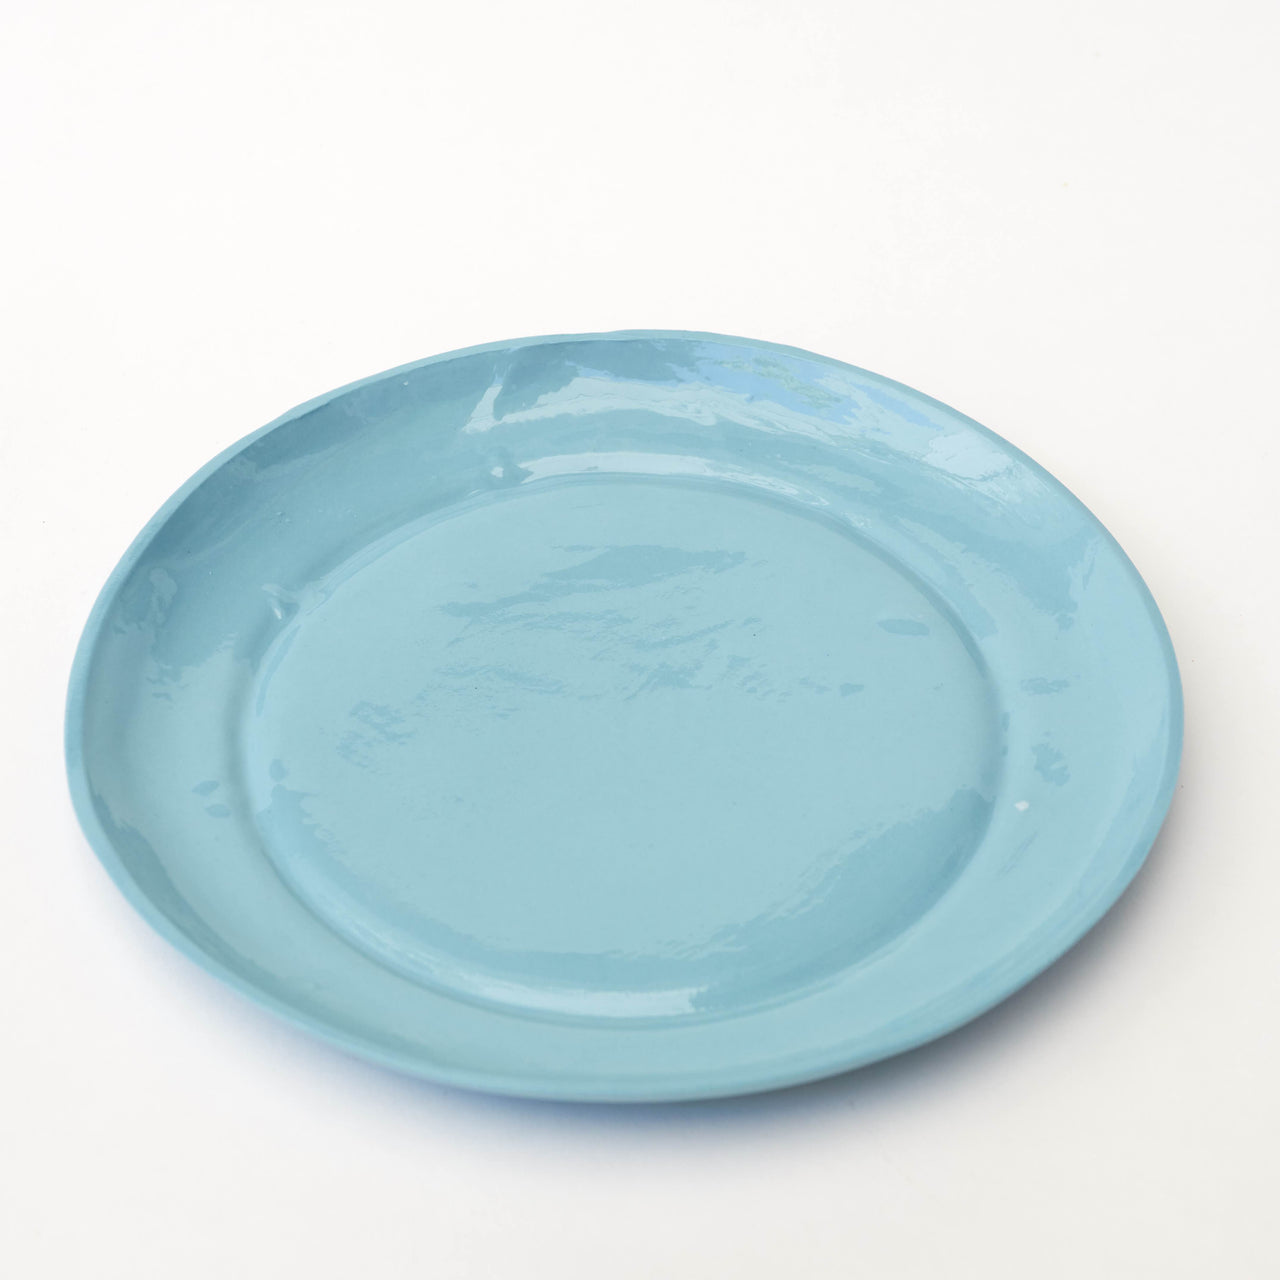 "Plato llano de porcelana tamaño postre, ""Aguas claras"" (I) - Just the Sea by SEA LOVERS"